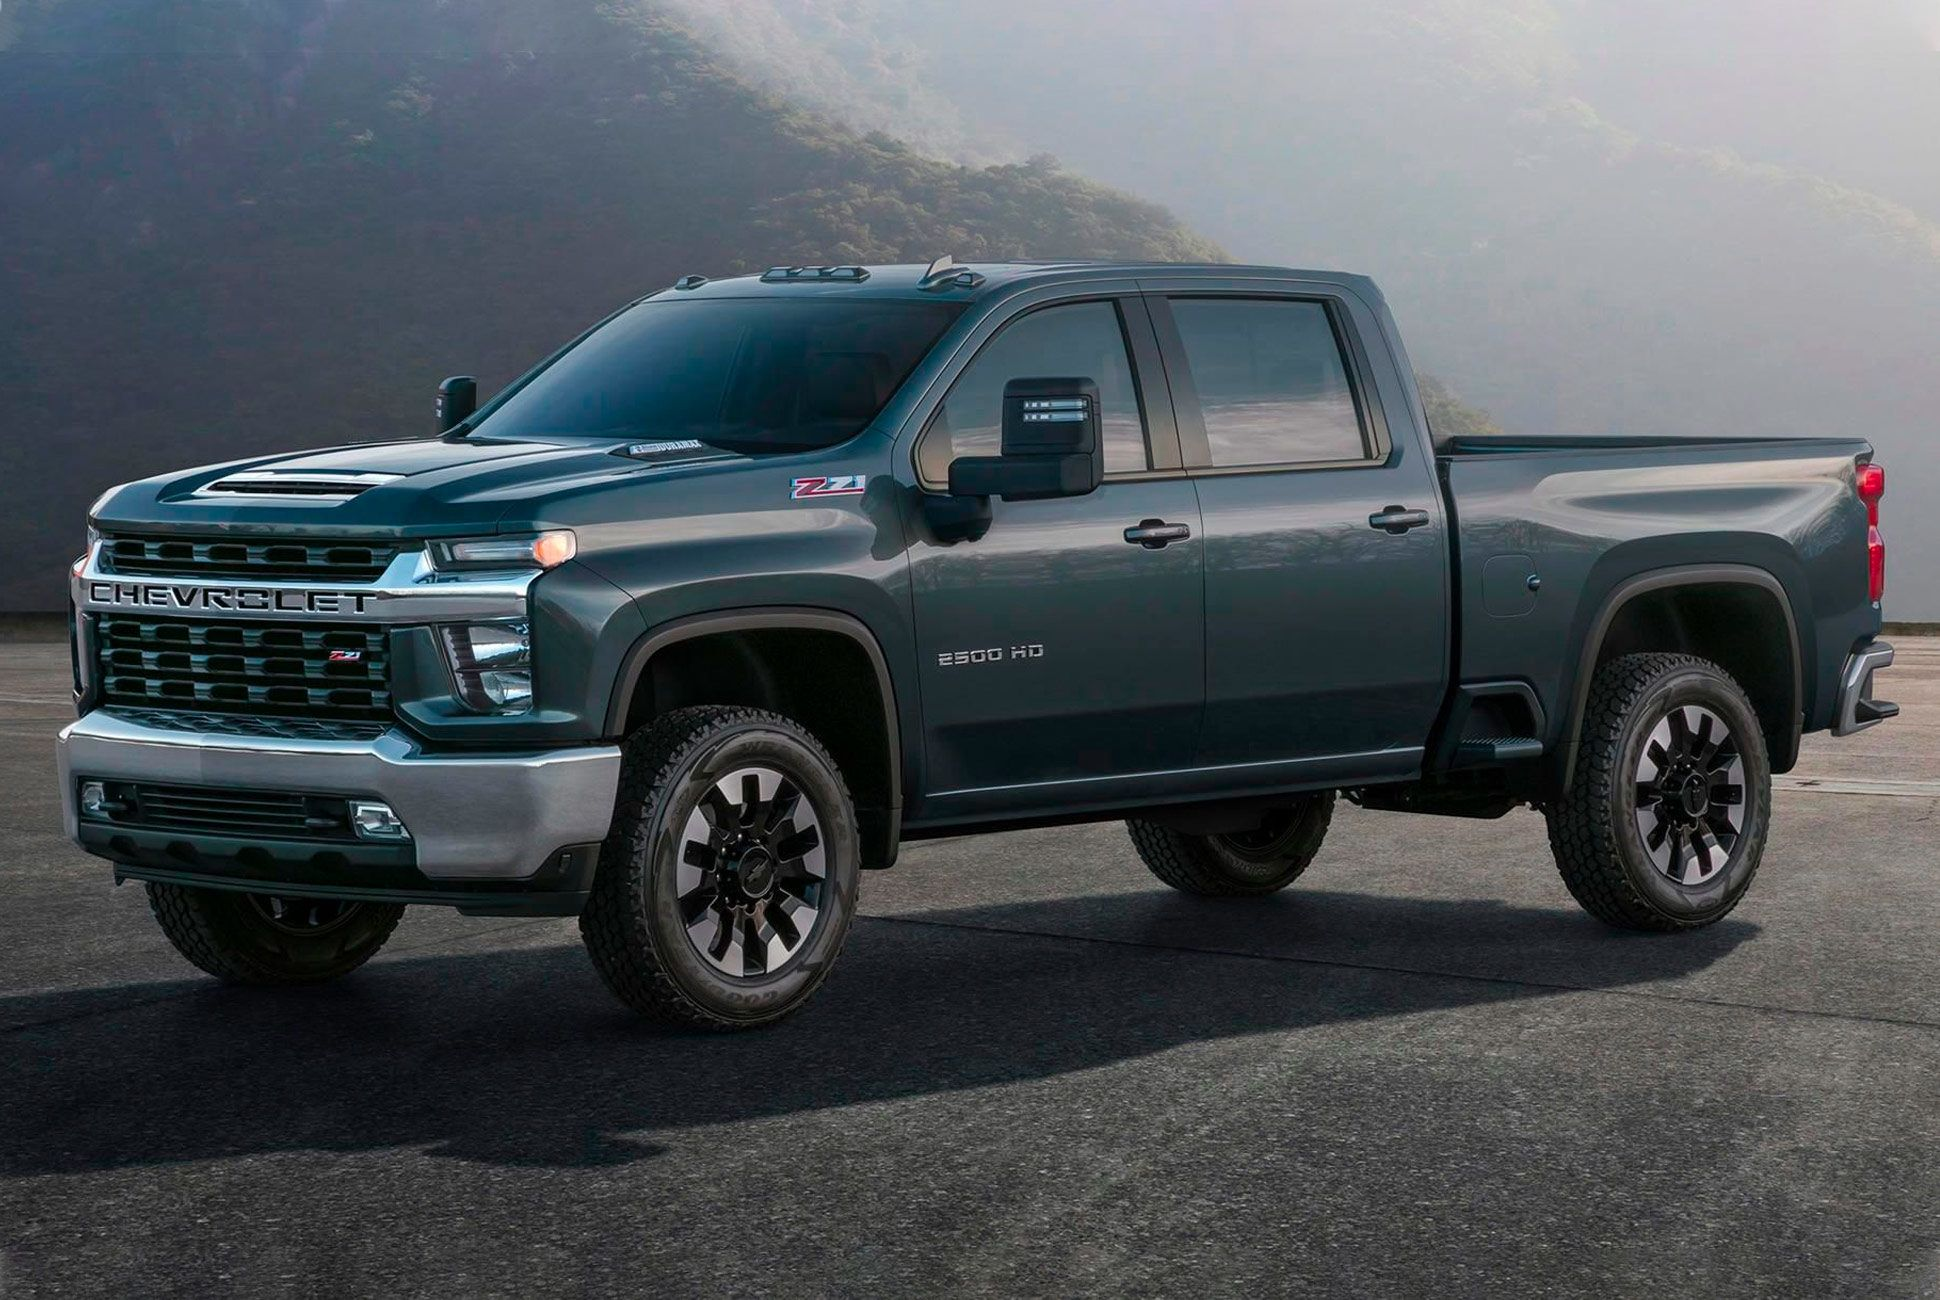 The 2020 Chevy Silverado 2500hd Has A Continent Sized Grille A Chevy Silverado Hd Chevy Silverado Silverado Hd